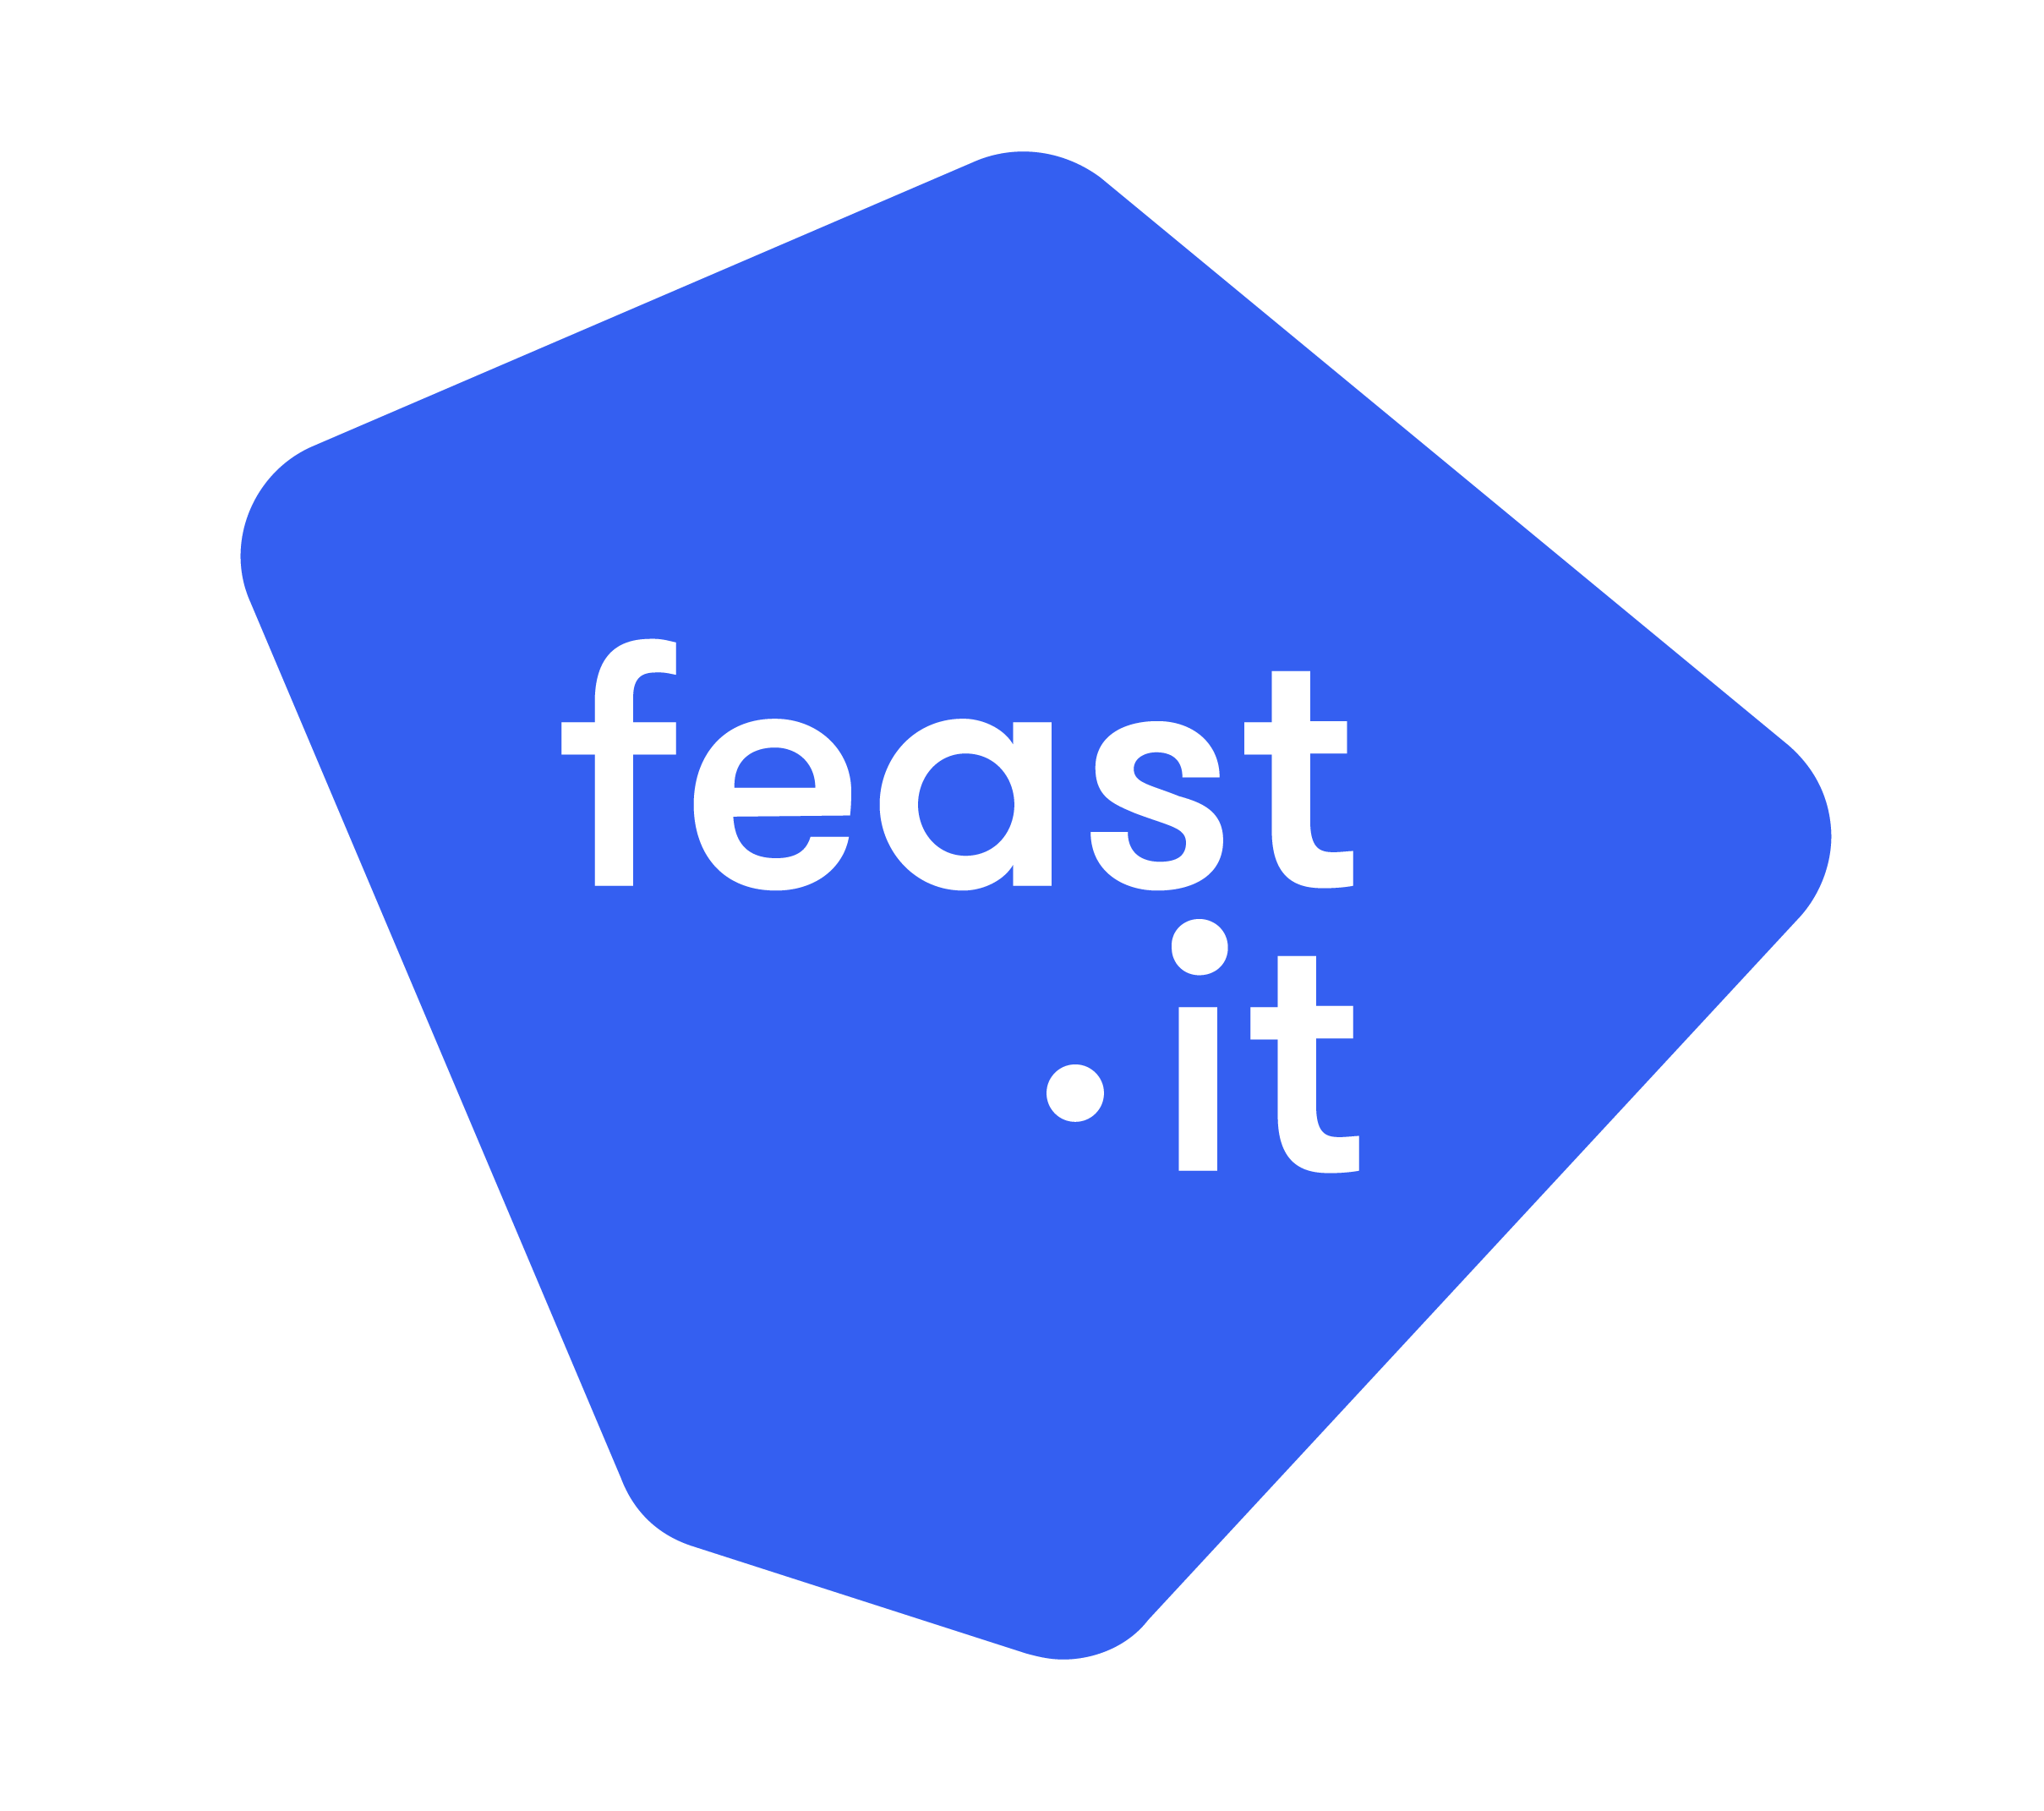 Read Feast It Reviews